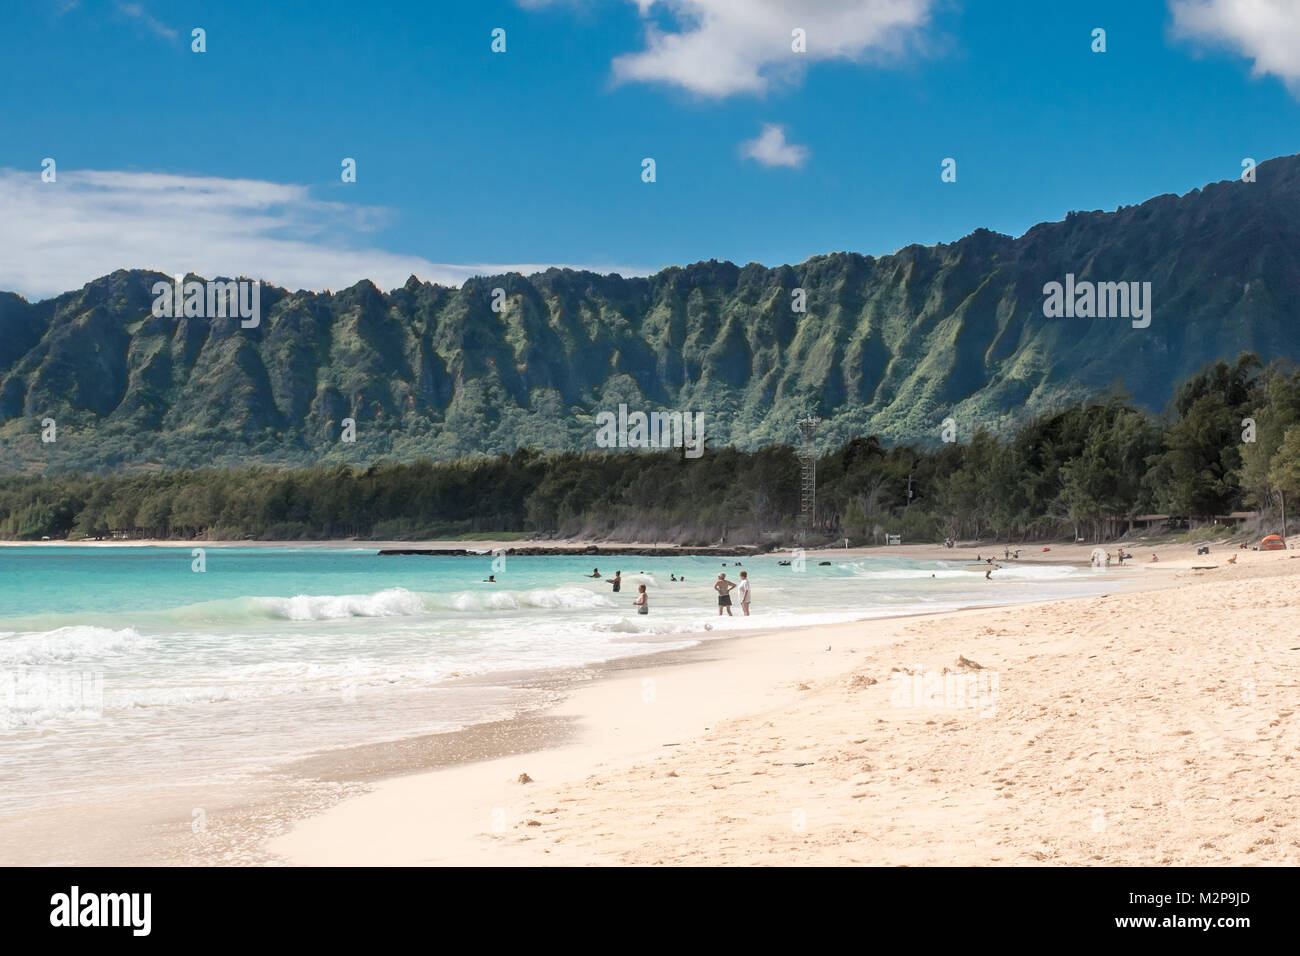 Bellows Beach Morning, Oahu Hawaiian Islands, with sunshine, sky, mountains and clouds - Stock Image